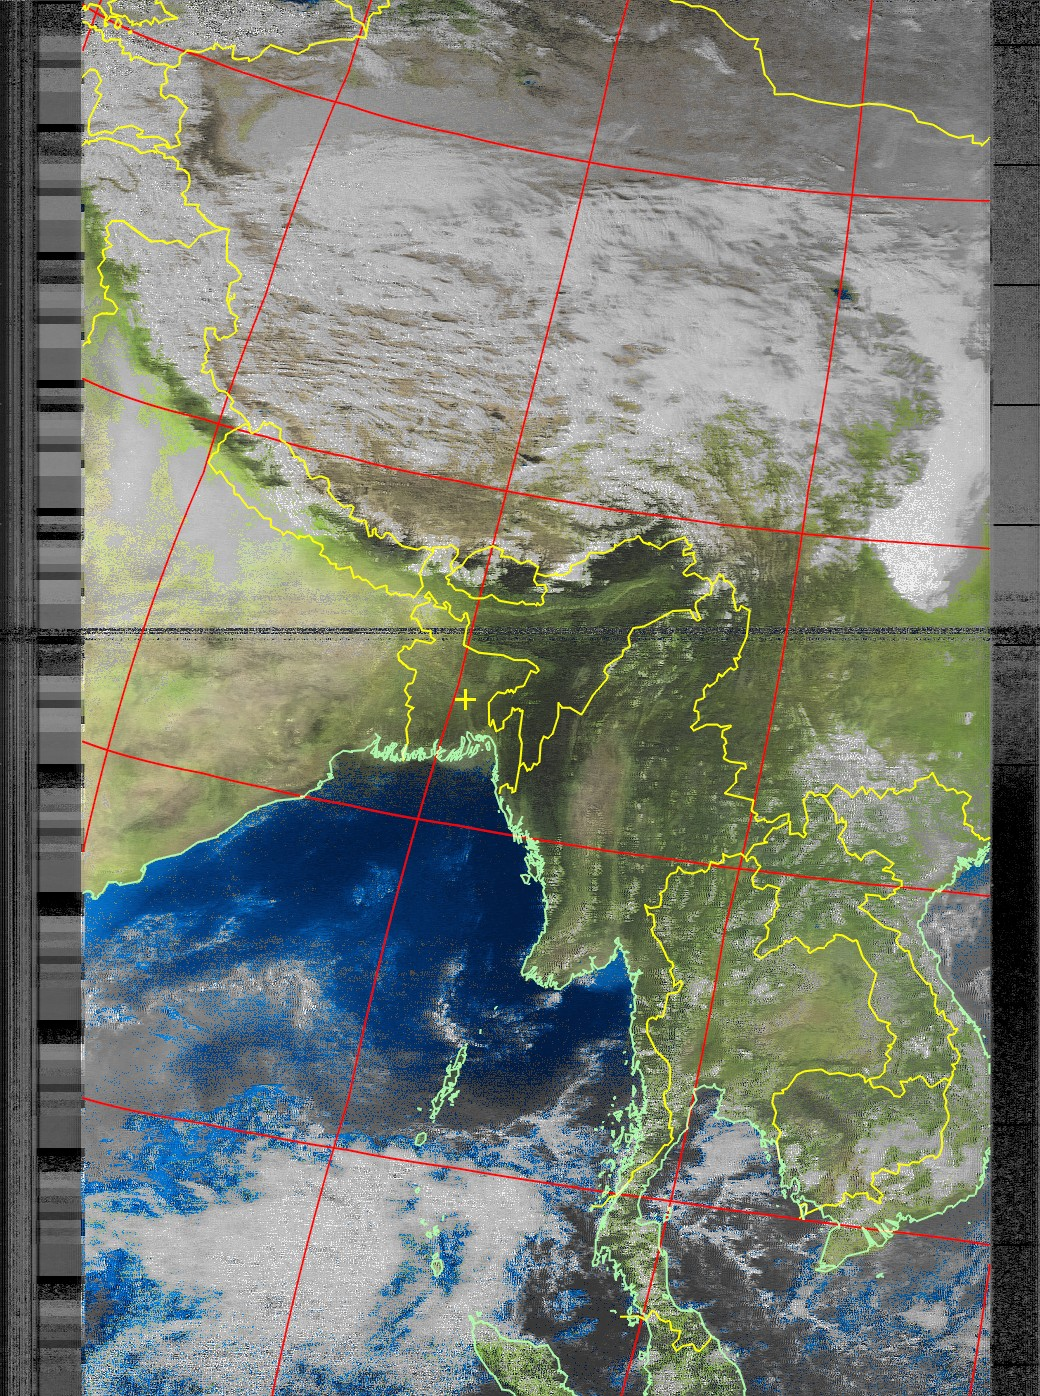 amateur weather radar jpg 1152x768